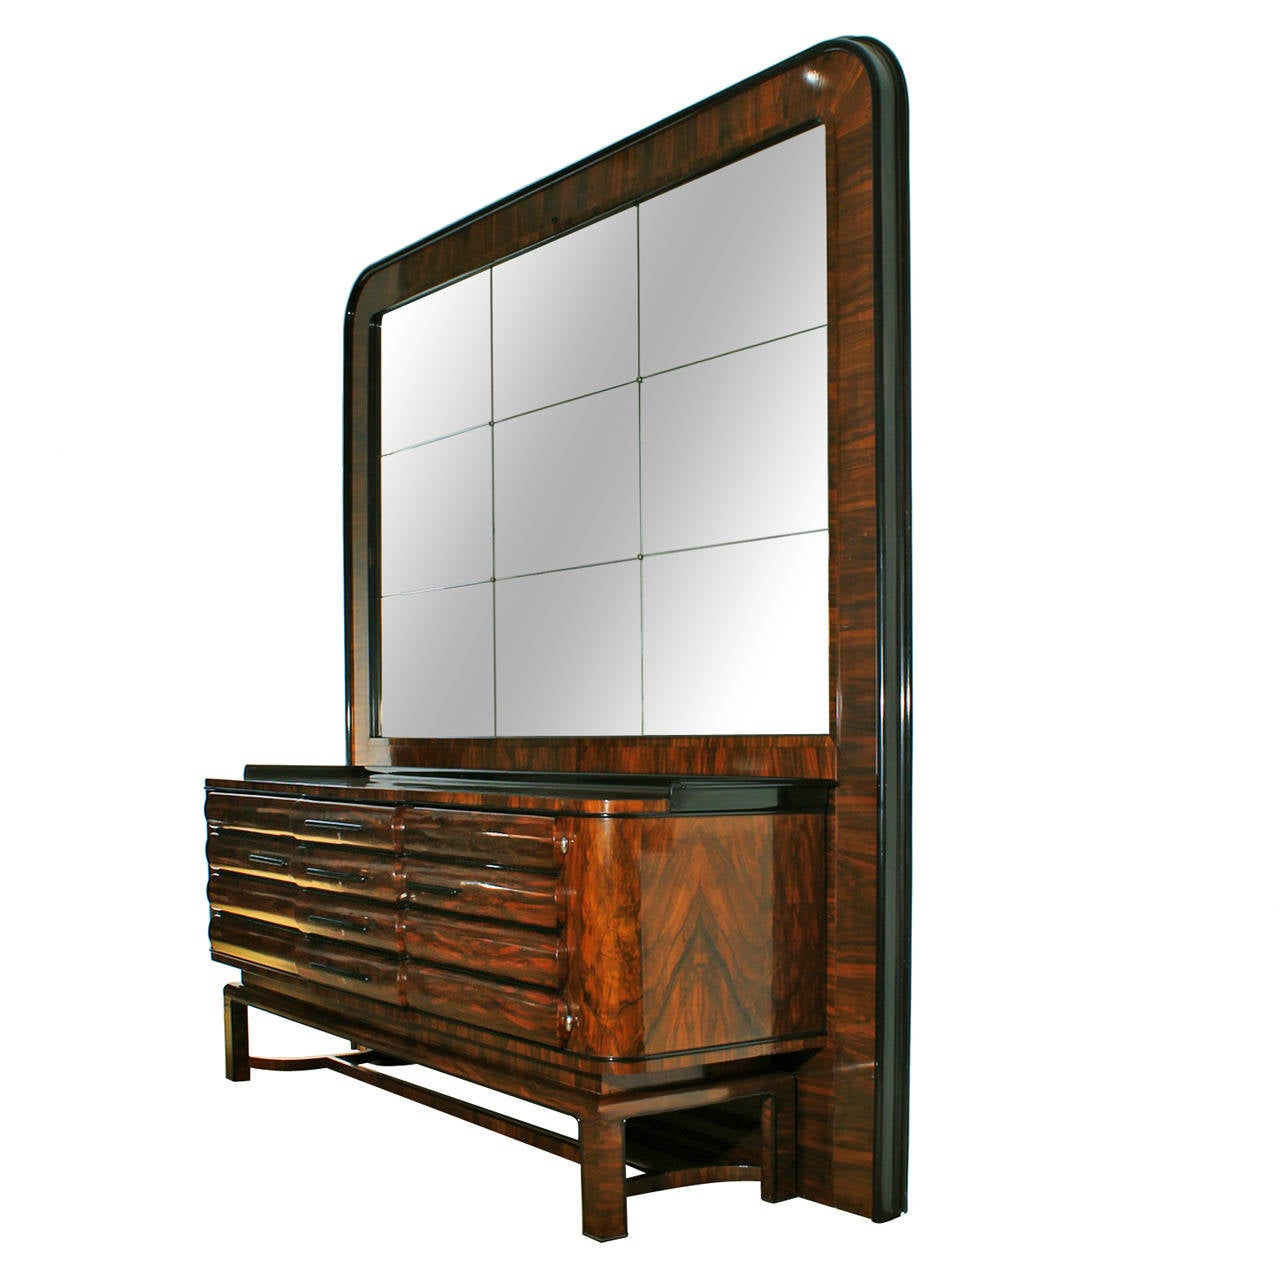 art deco sideboard in the style of bruno paul for sale at. Black Bedroom Furniture Sets. Home Design Ideas